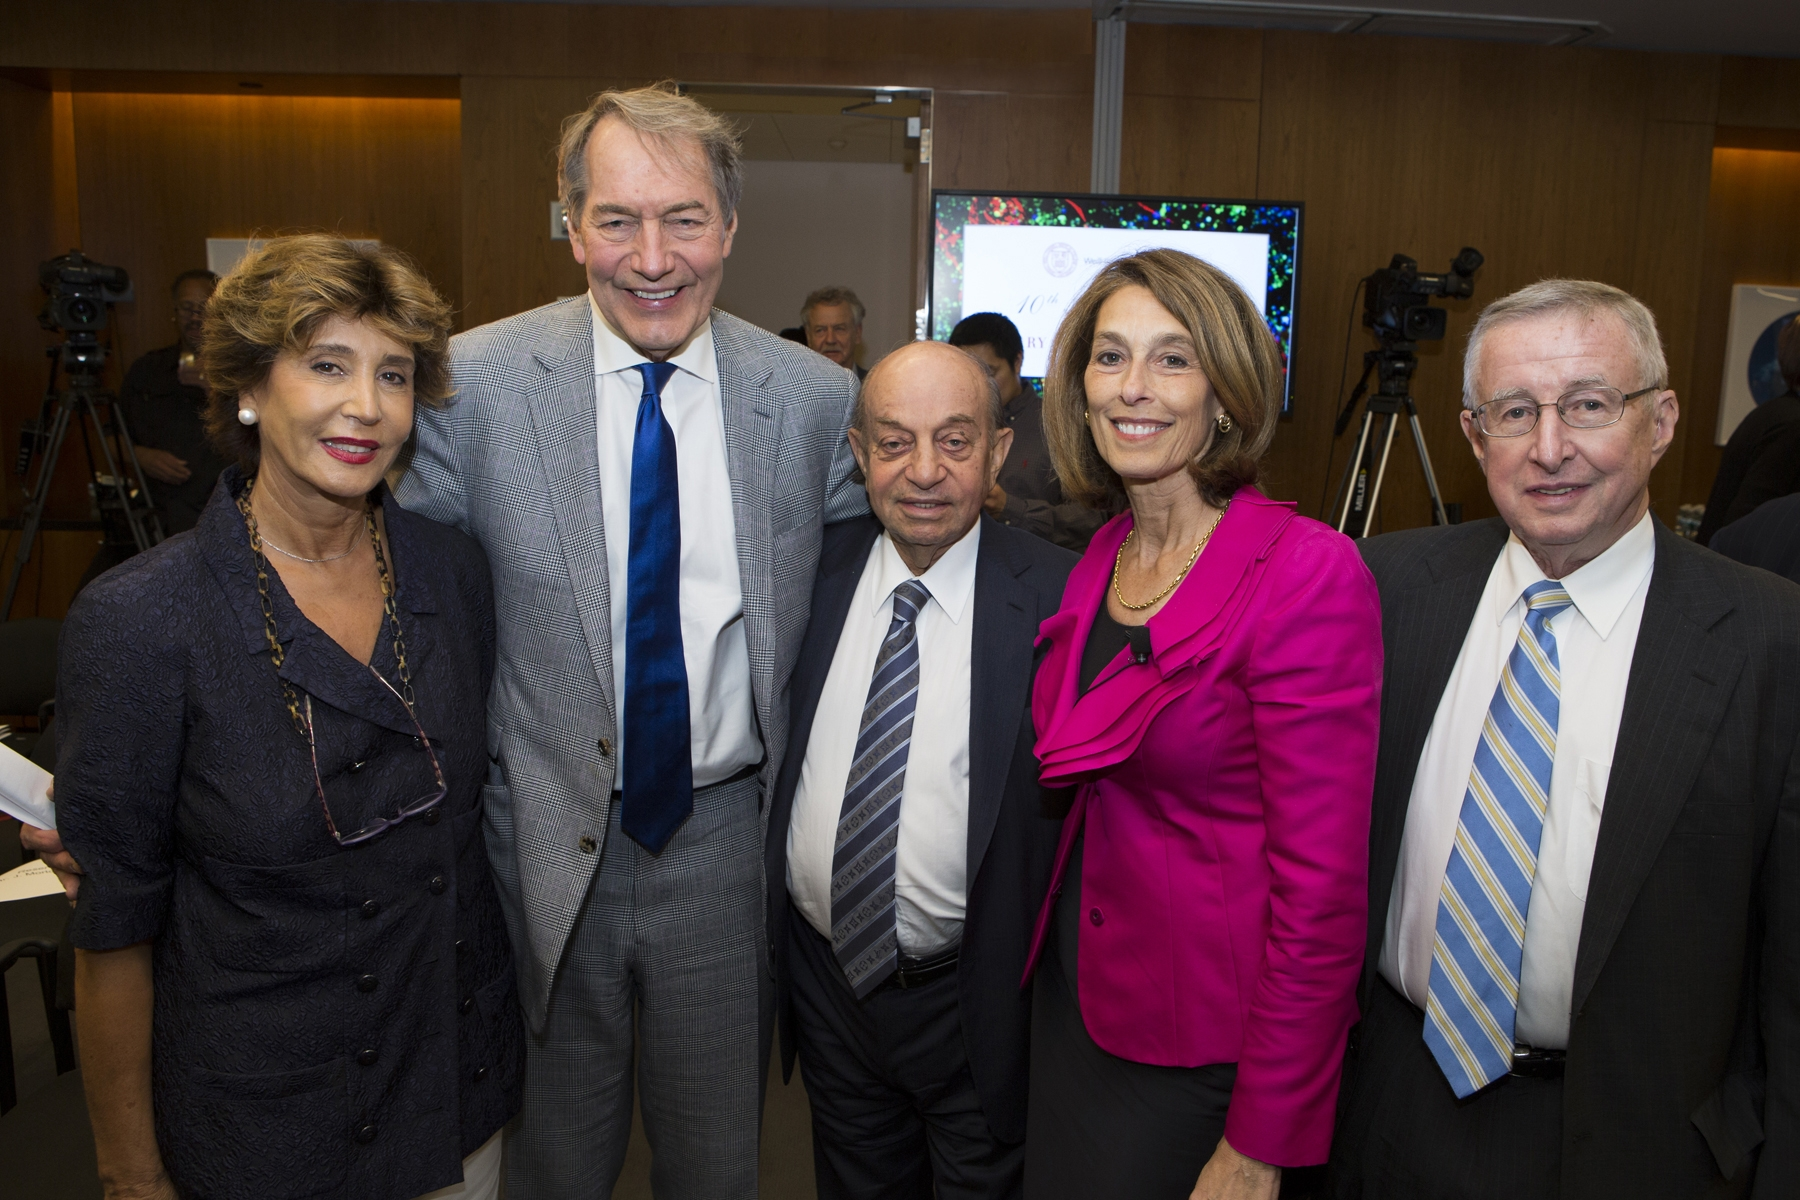 From left: Shahla Ansary, Charlie Rose, Hushang Ansary, Dr. Laurie H. Glimcher and Dr. Antonio M. Gotto, Jr.